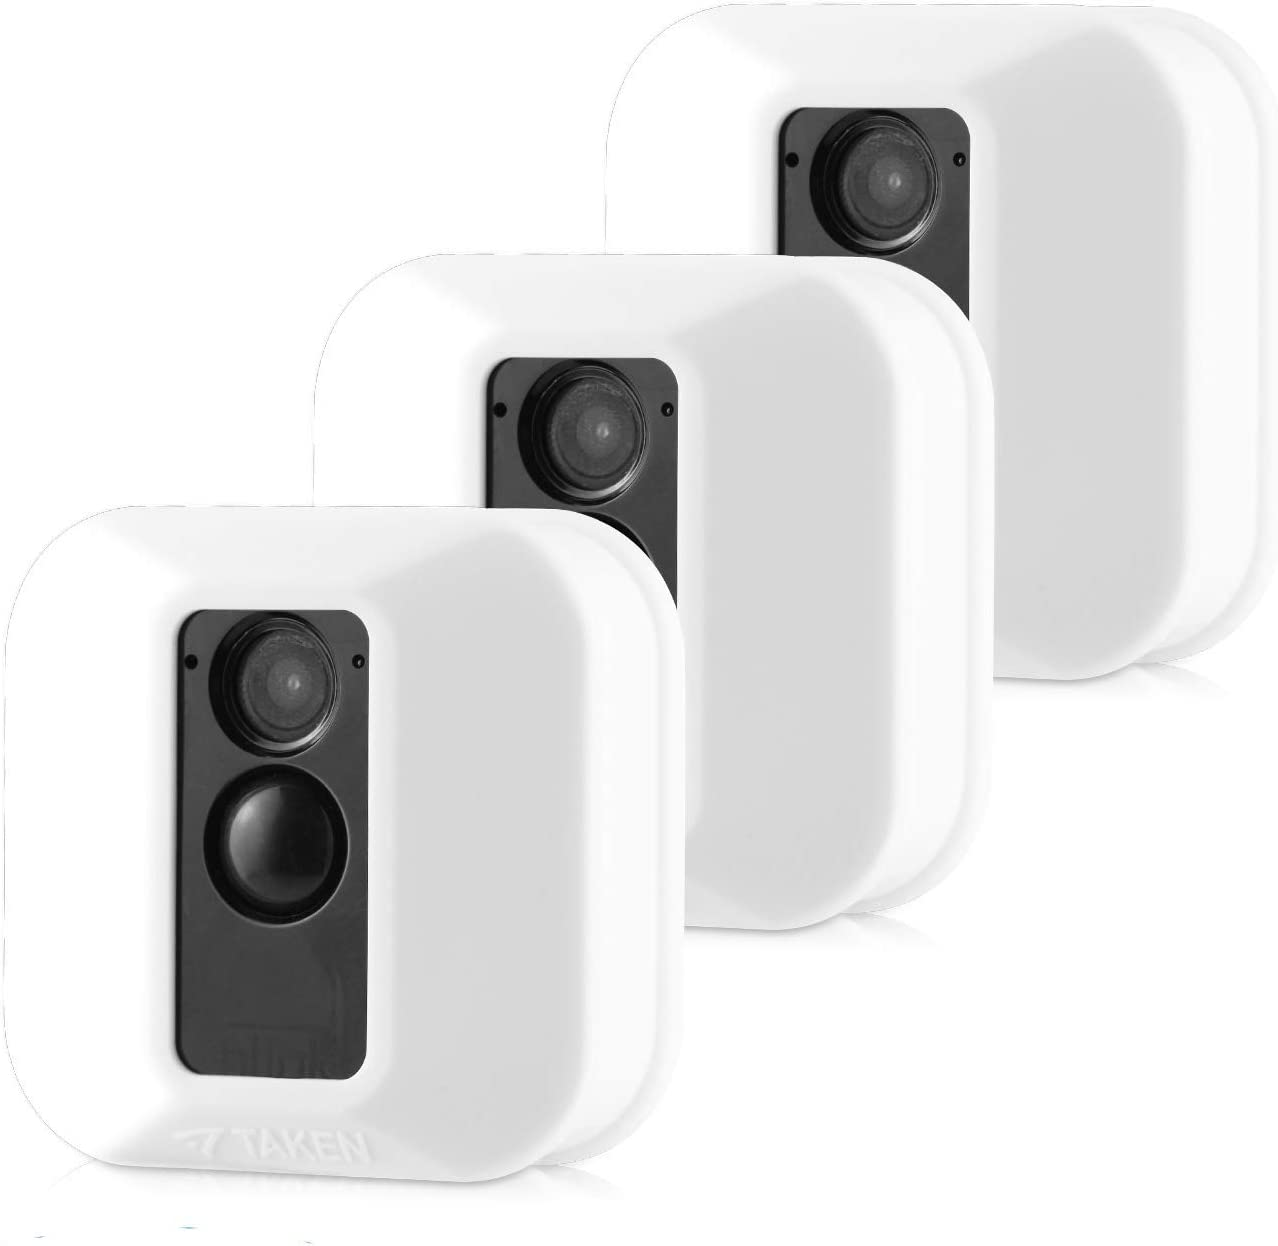 Silicone Covers Skins for Blink XT/XT2 Security Camera,Silicon Case for Blinks Home Security - Anti-Scretch Protective for Full Protection - Indoor Outdoor Best Home Accessories (3 Pack White)